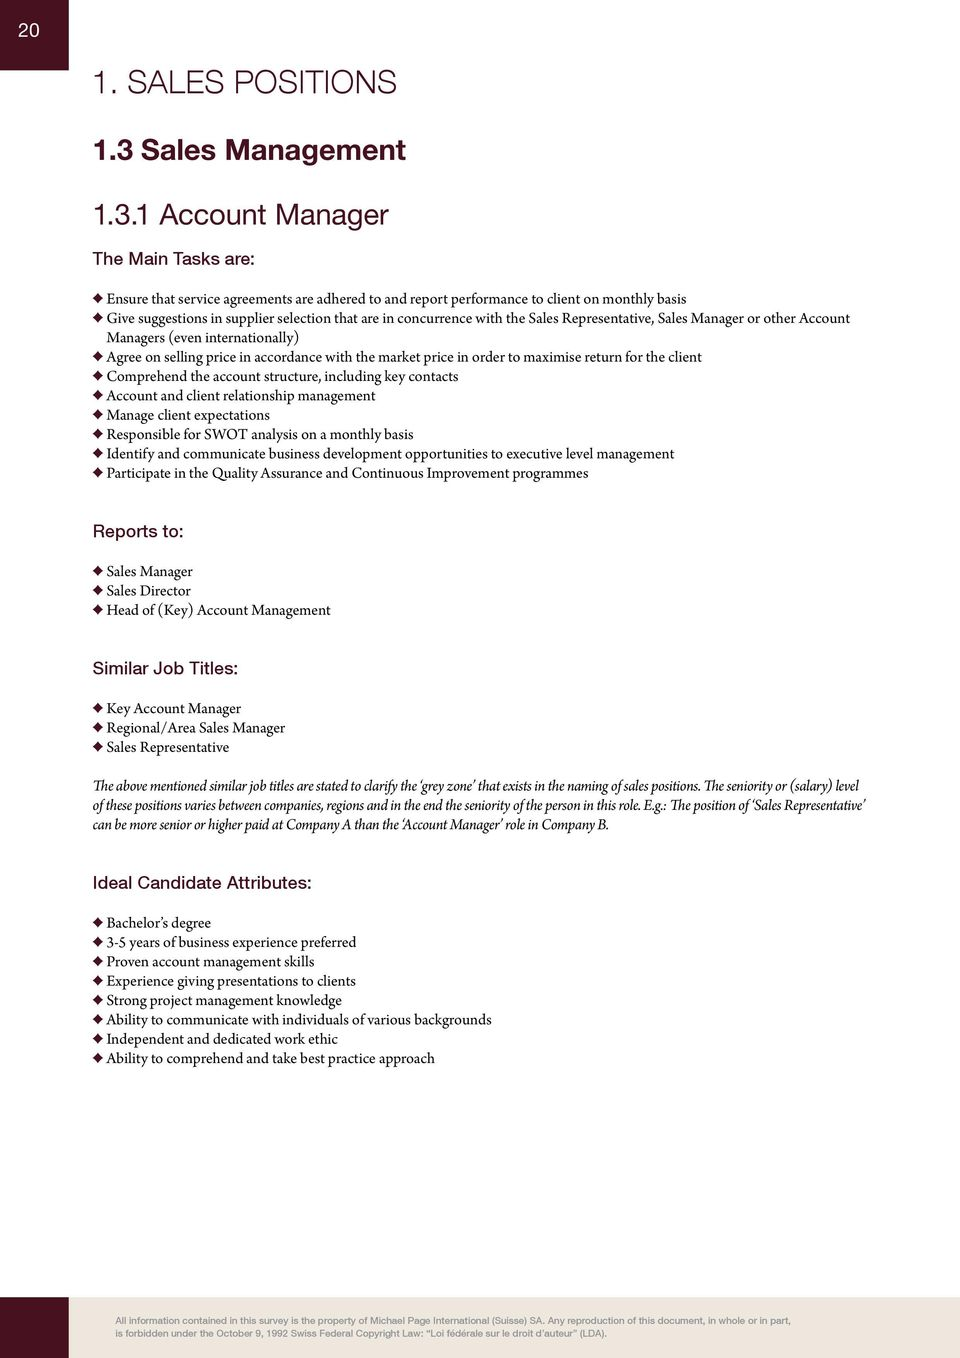 1 Account Manager The Main Tasks are: Ensure that service agreements are adhered to and report performance to client on monthly basis Give suggestions in supplier selection that are in concurrence